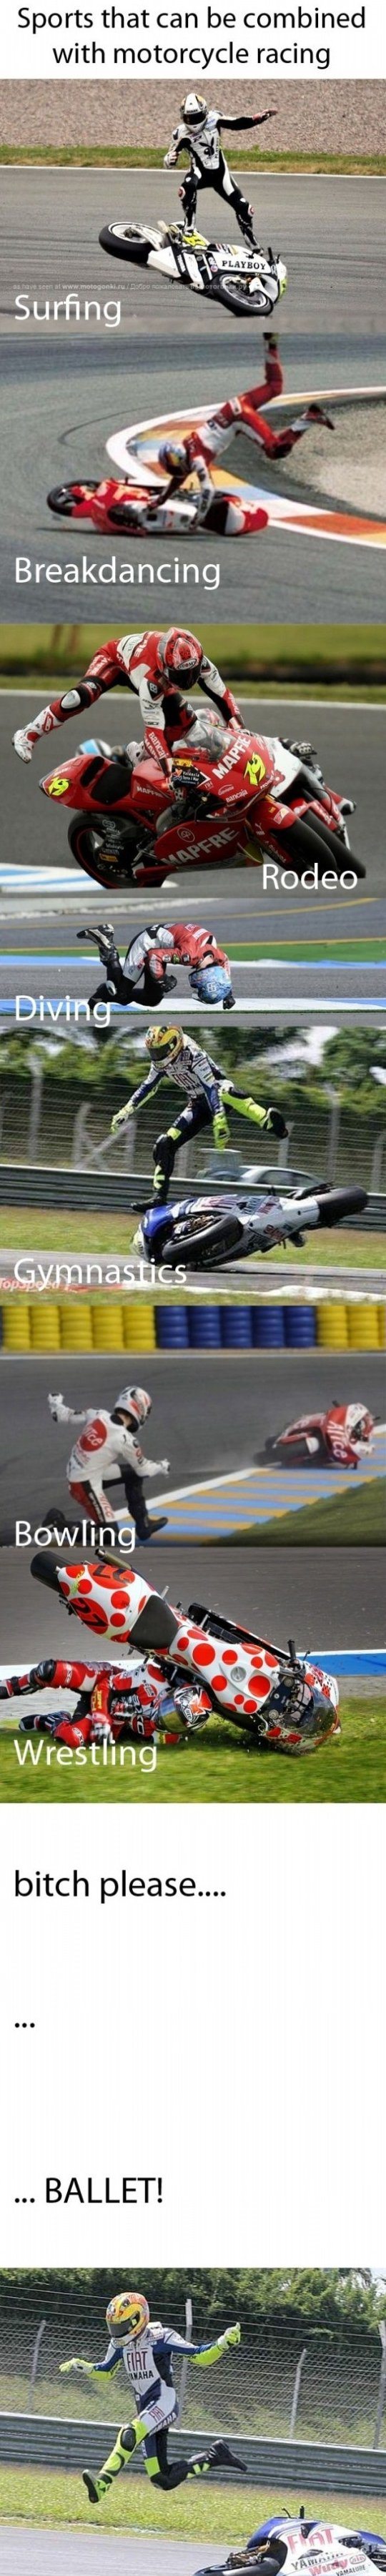 Sports that can be combined with motorcycle racing